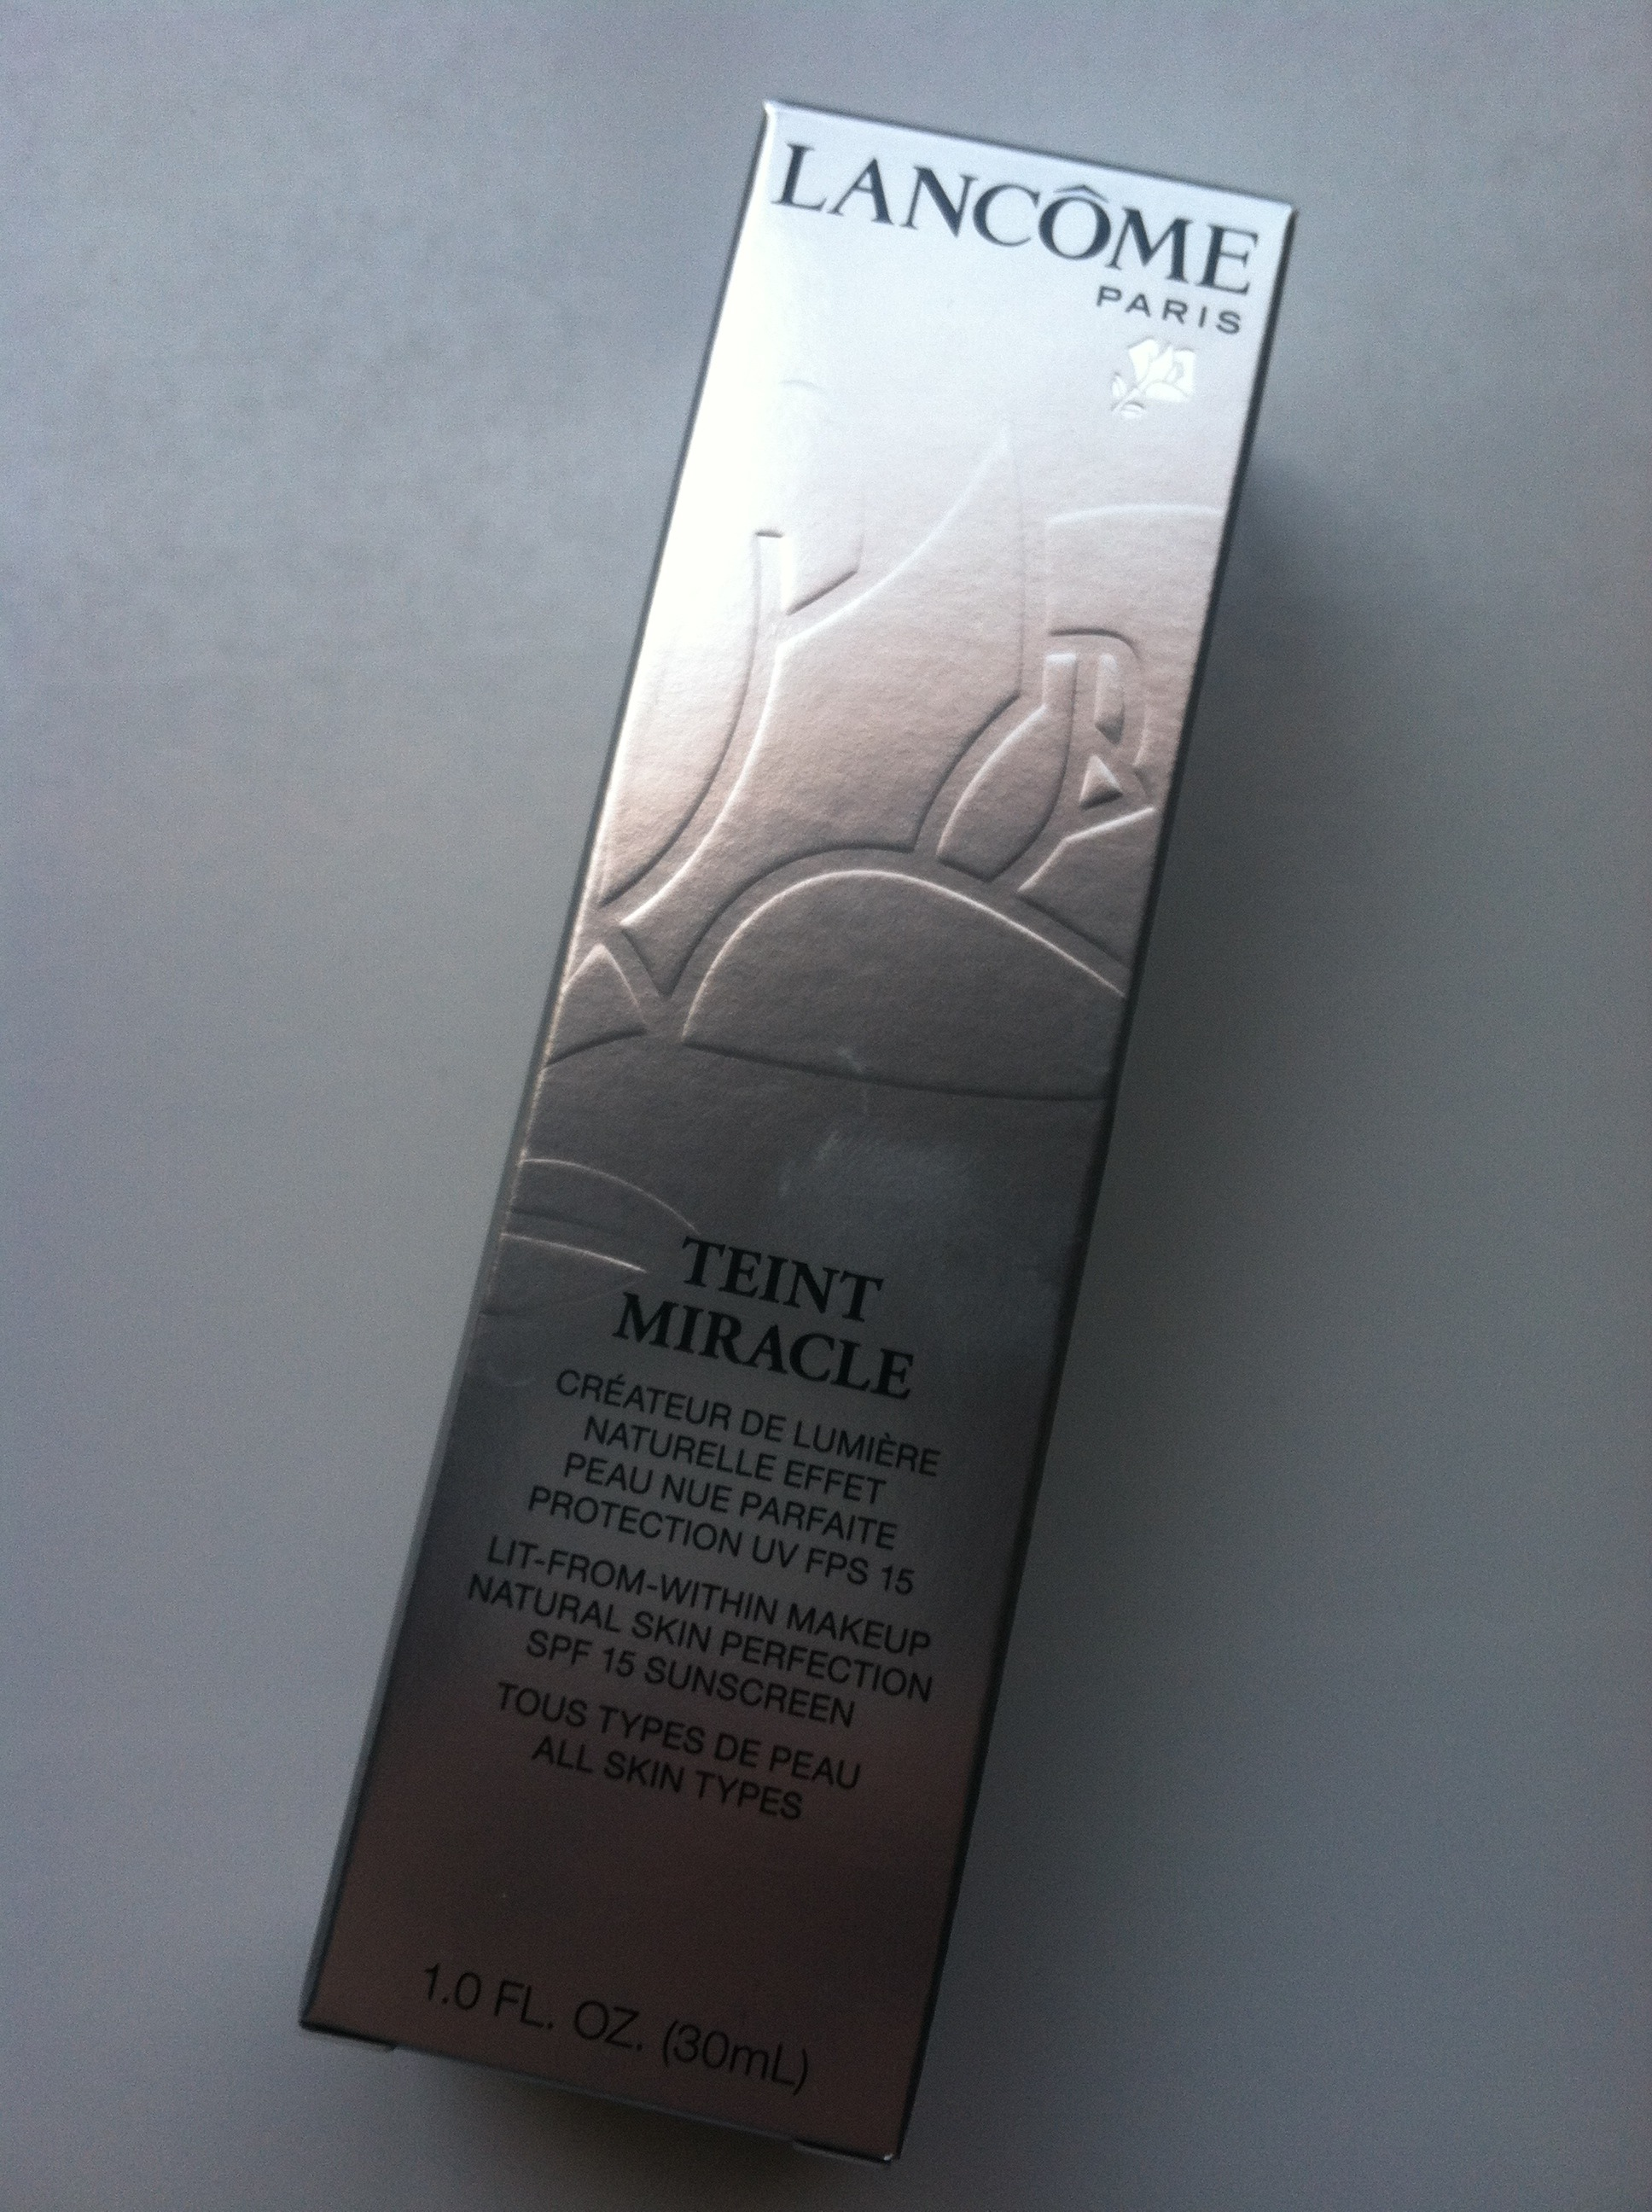 [LANCOME] Teint Miracle Foundation